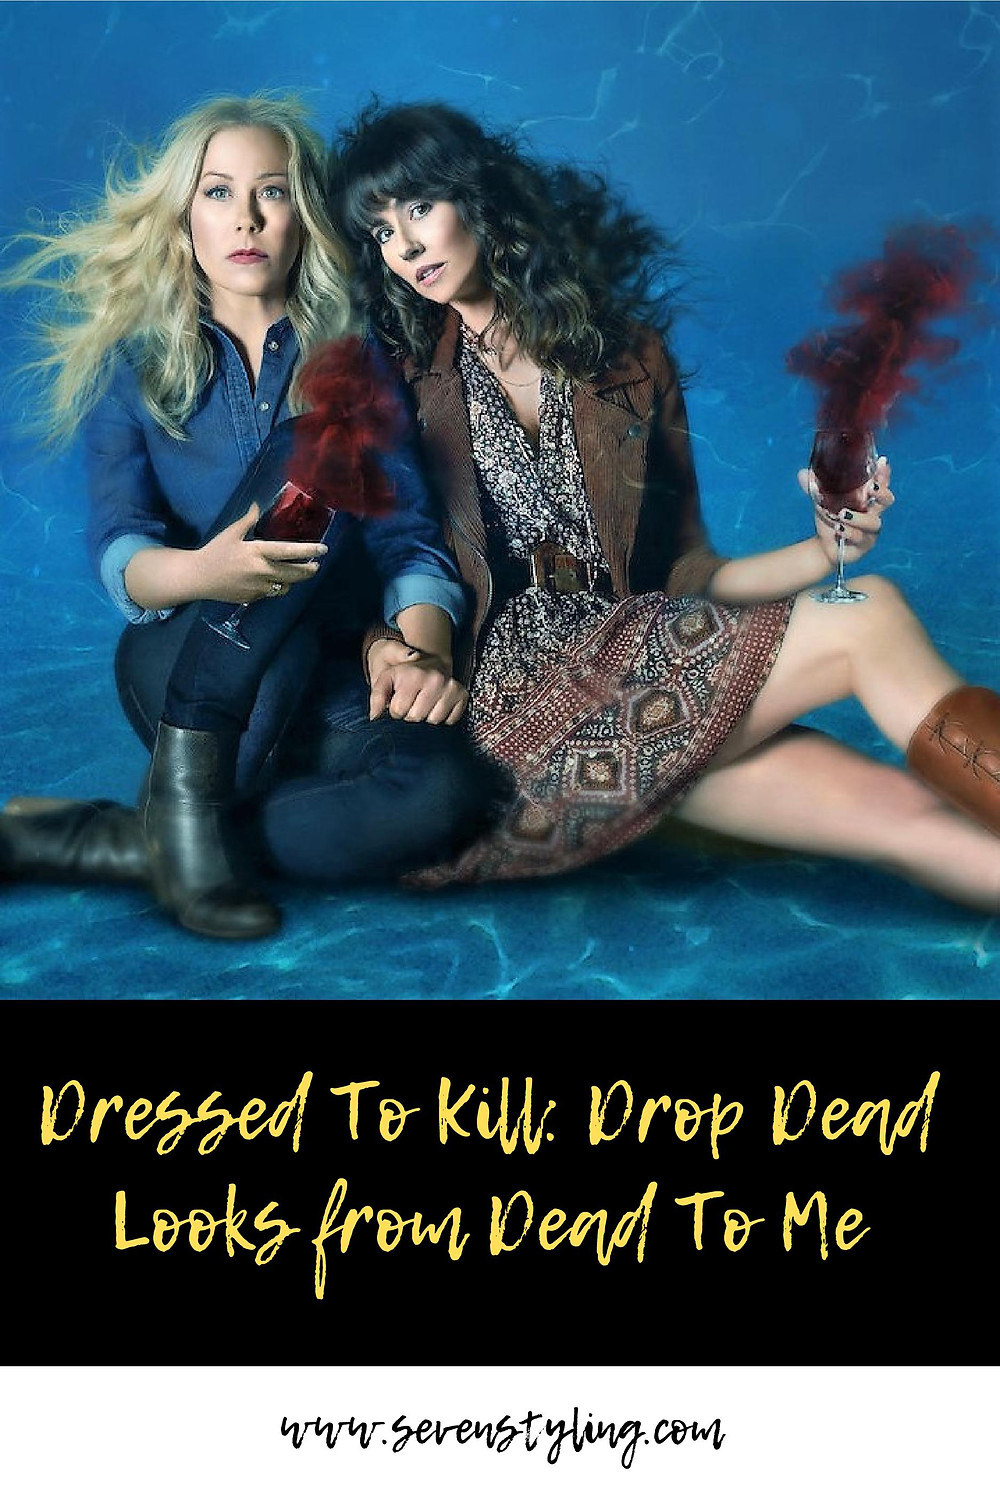 Dressed To Kill: Drop Dead Looks From Dead To Me